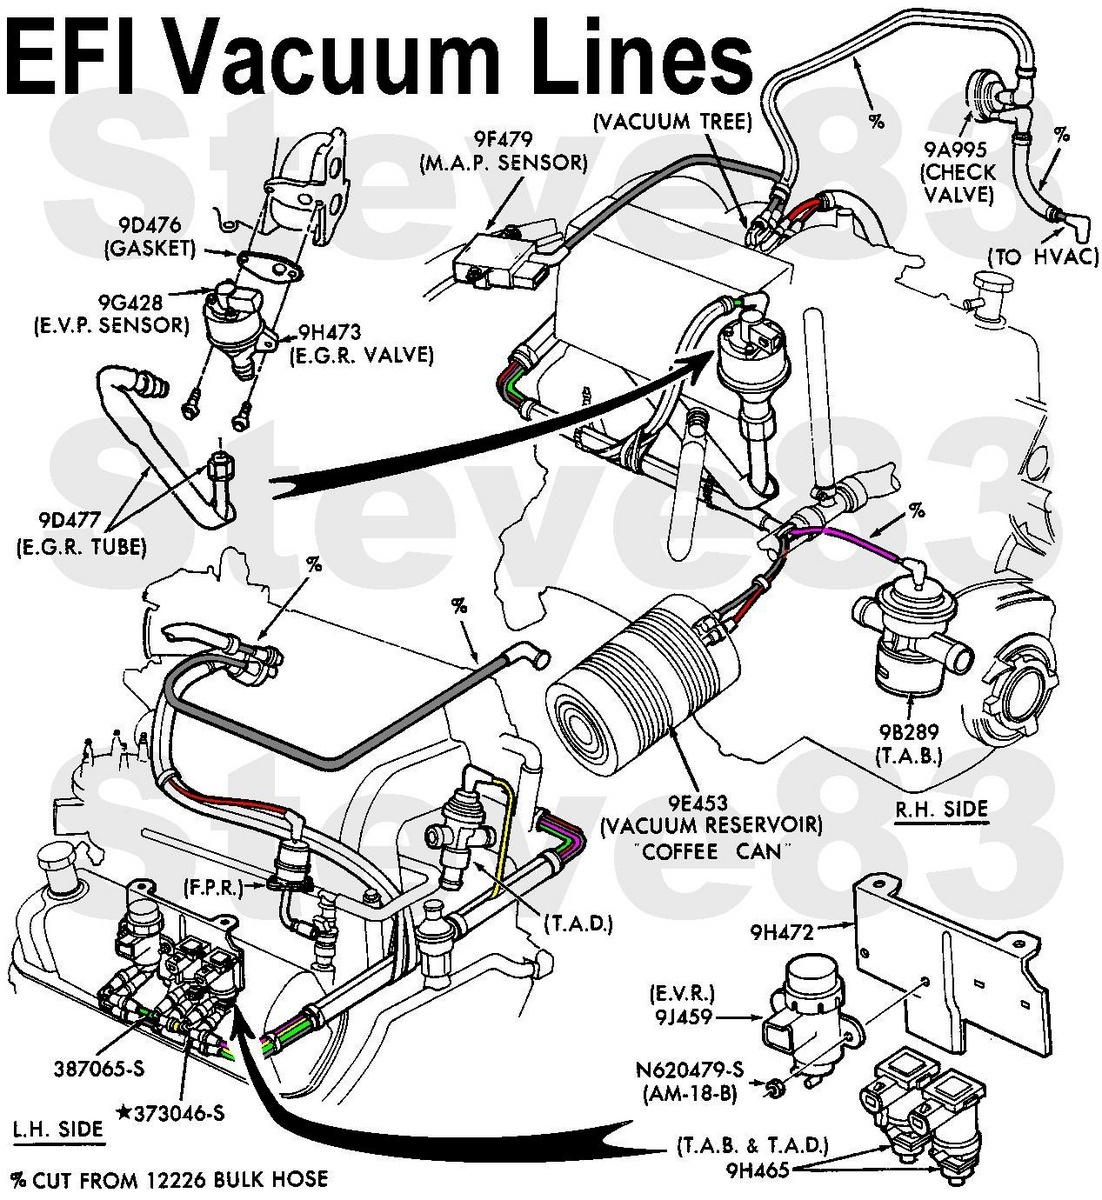 hight resolution of ford f 150 questions is there a diagram for vacuum hoses on 1990 ford escort vacuum hose diagram ford vacuum hose diagram